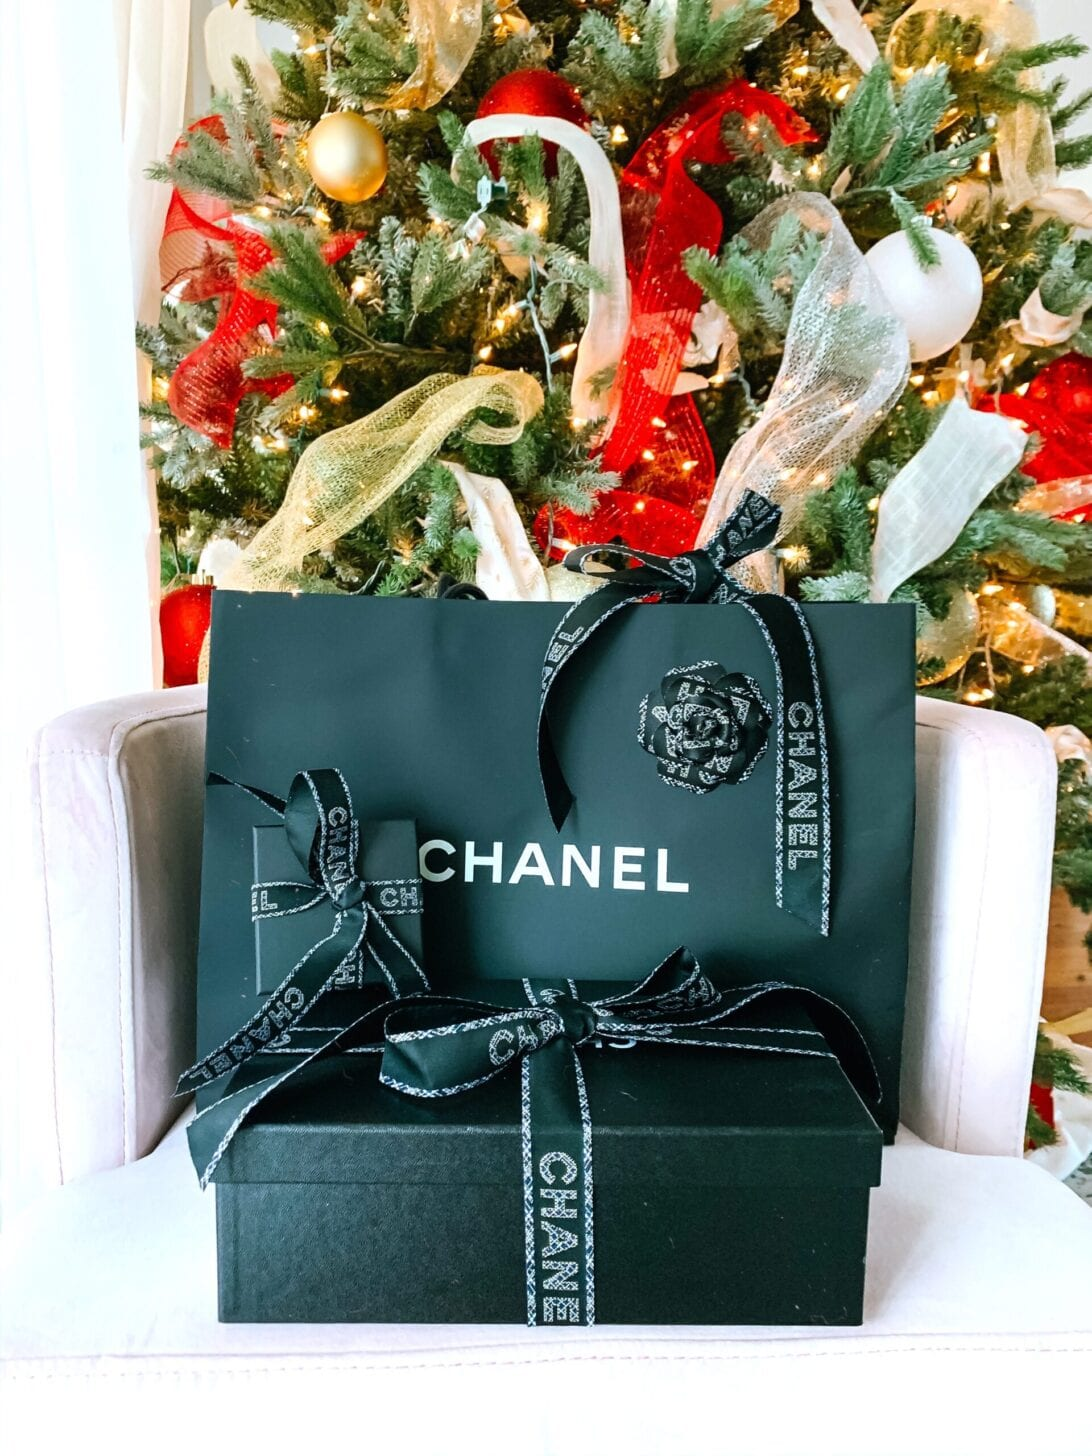 CHANEL BOX, CHANEL BAG, CHANEL CHRISTMAS